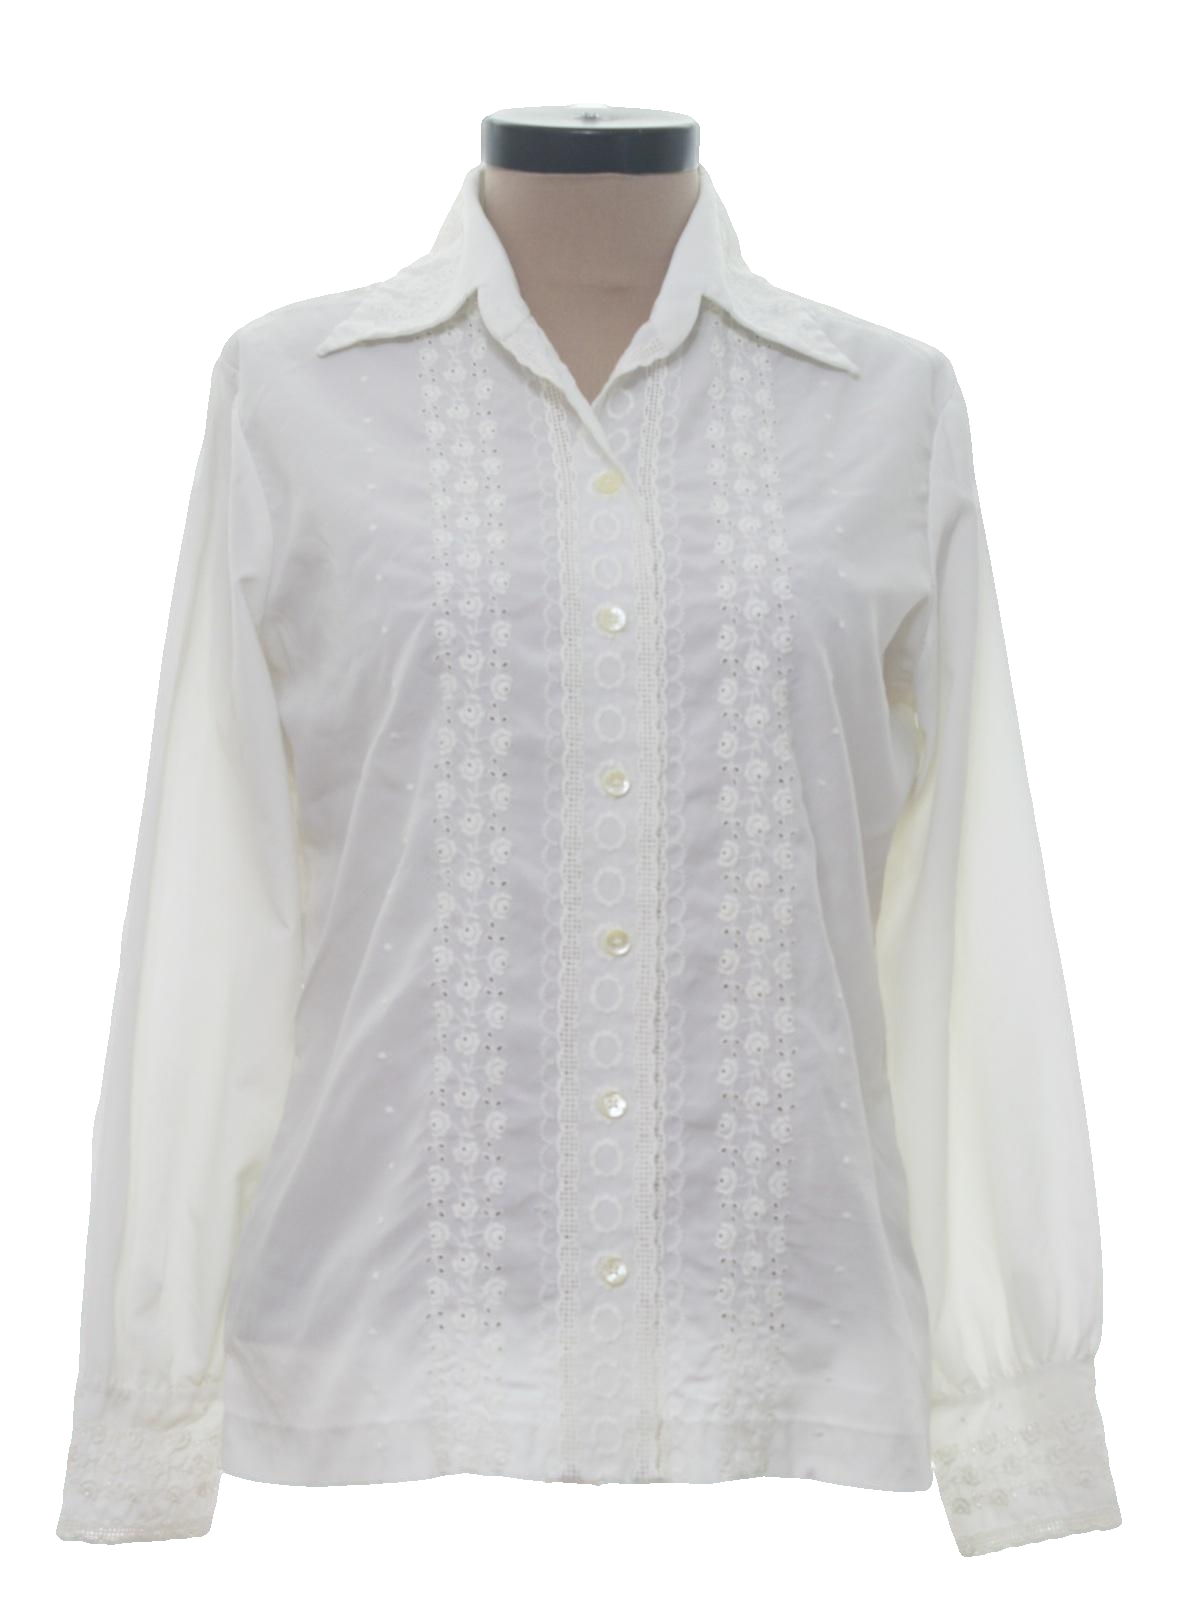 White Blouse Dressy Rockwall Auction